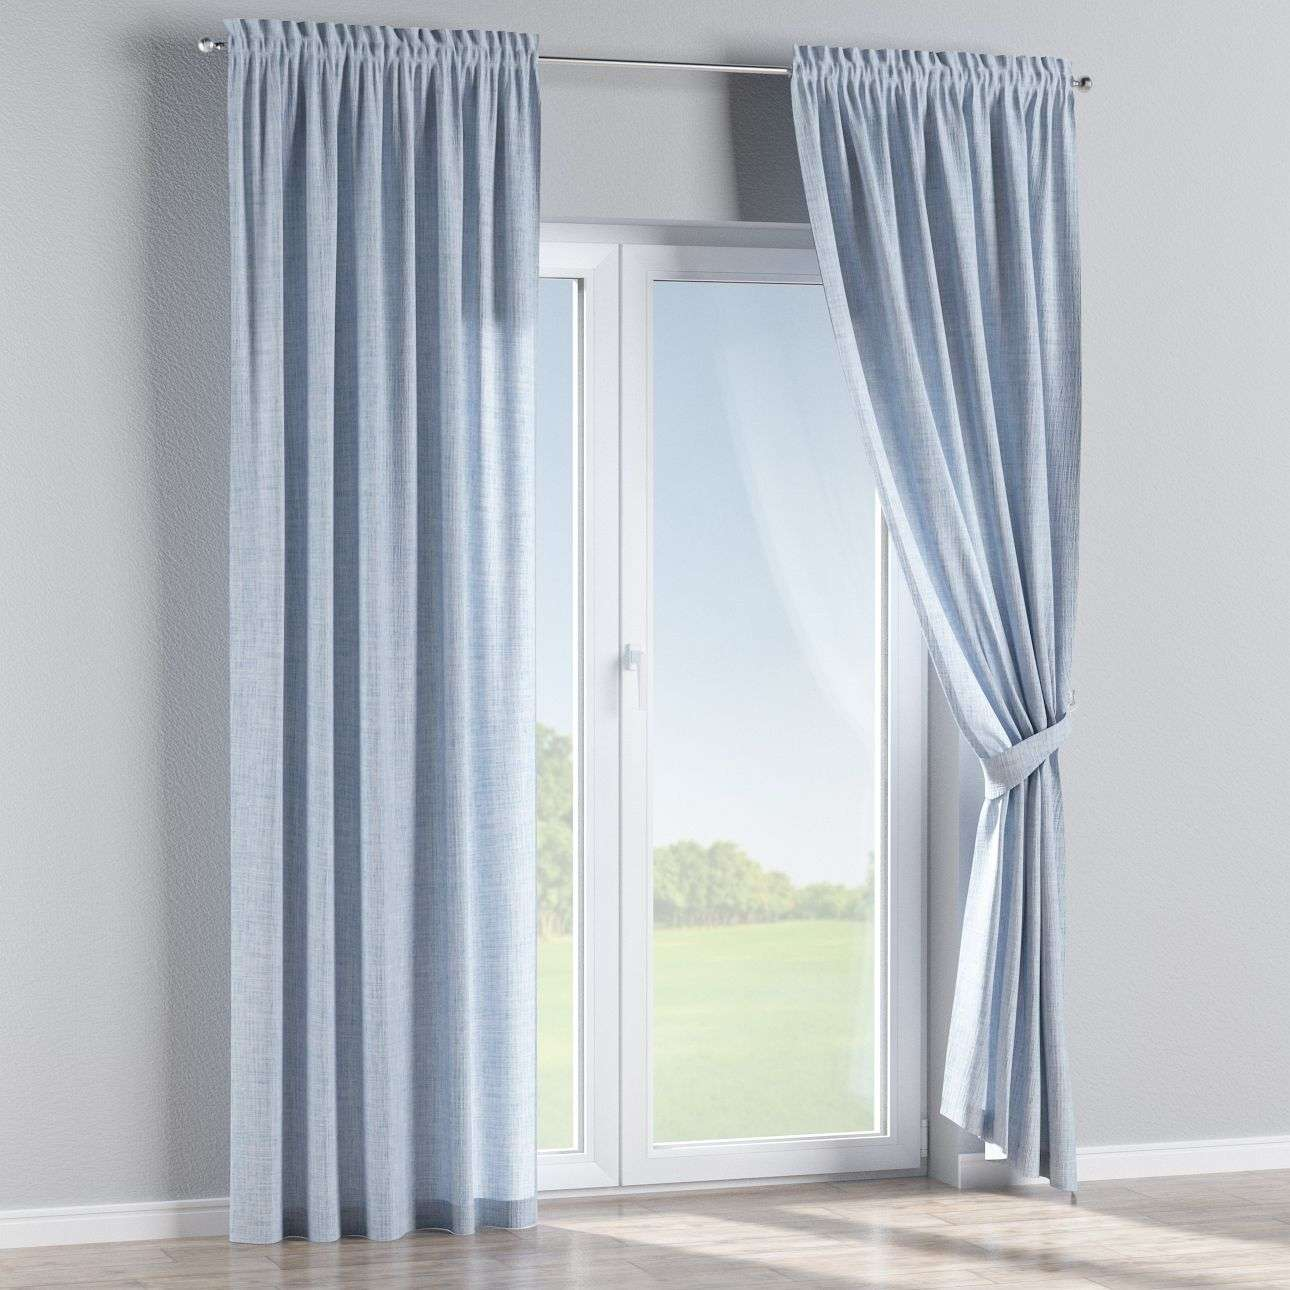 Slot and frill curtains 130 × 260 cm (51 × 102 inch) in collection Aquarelle, fabric: 140-74